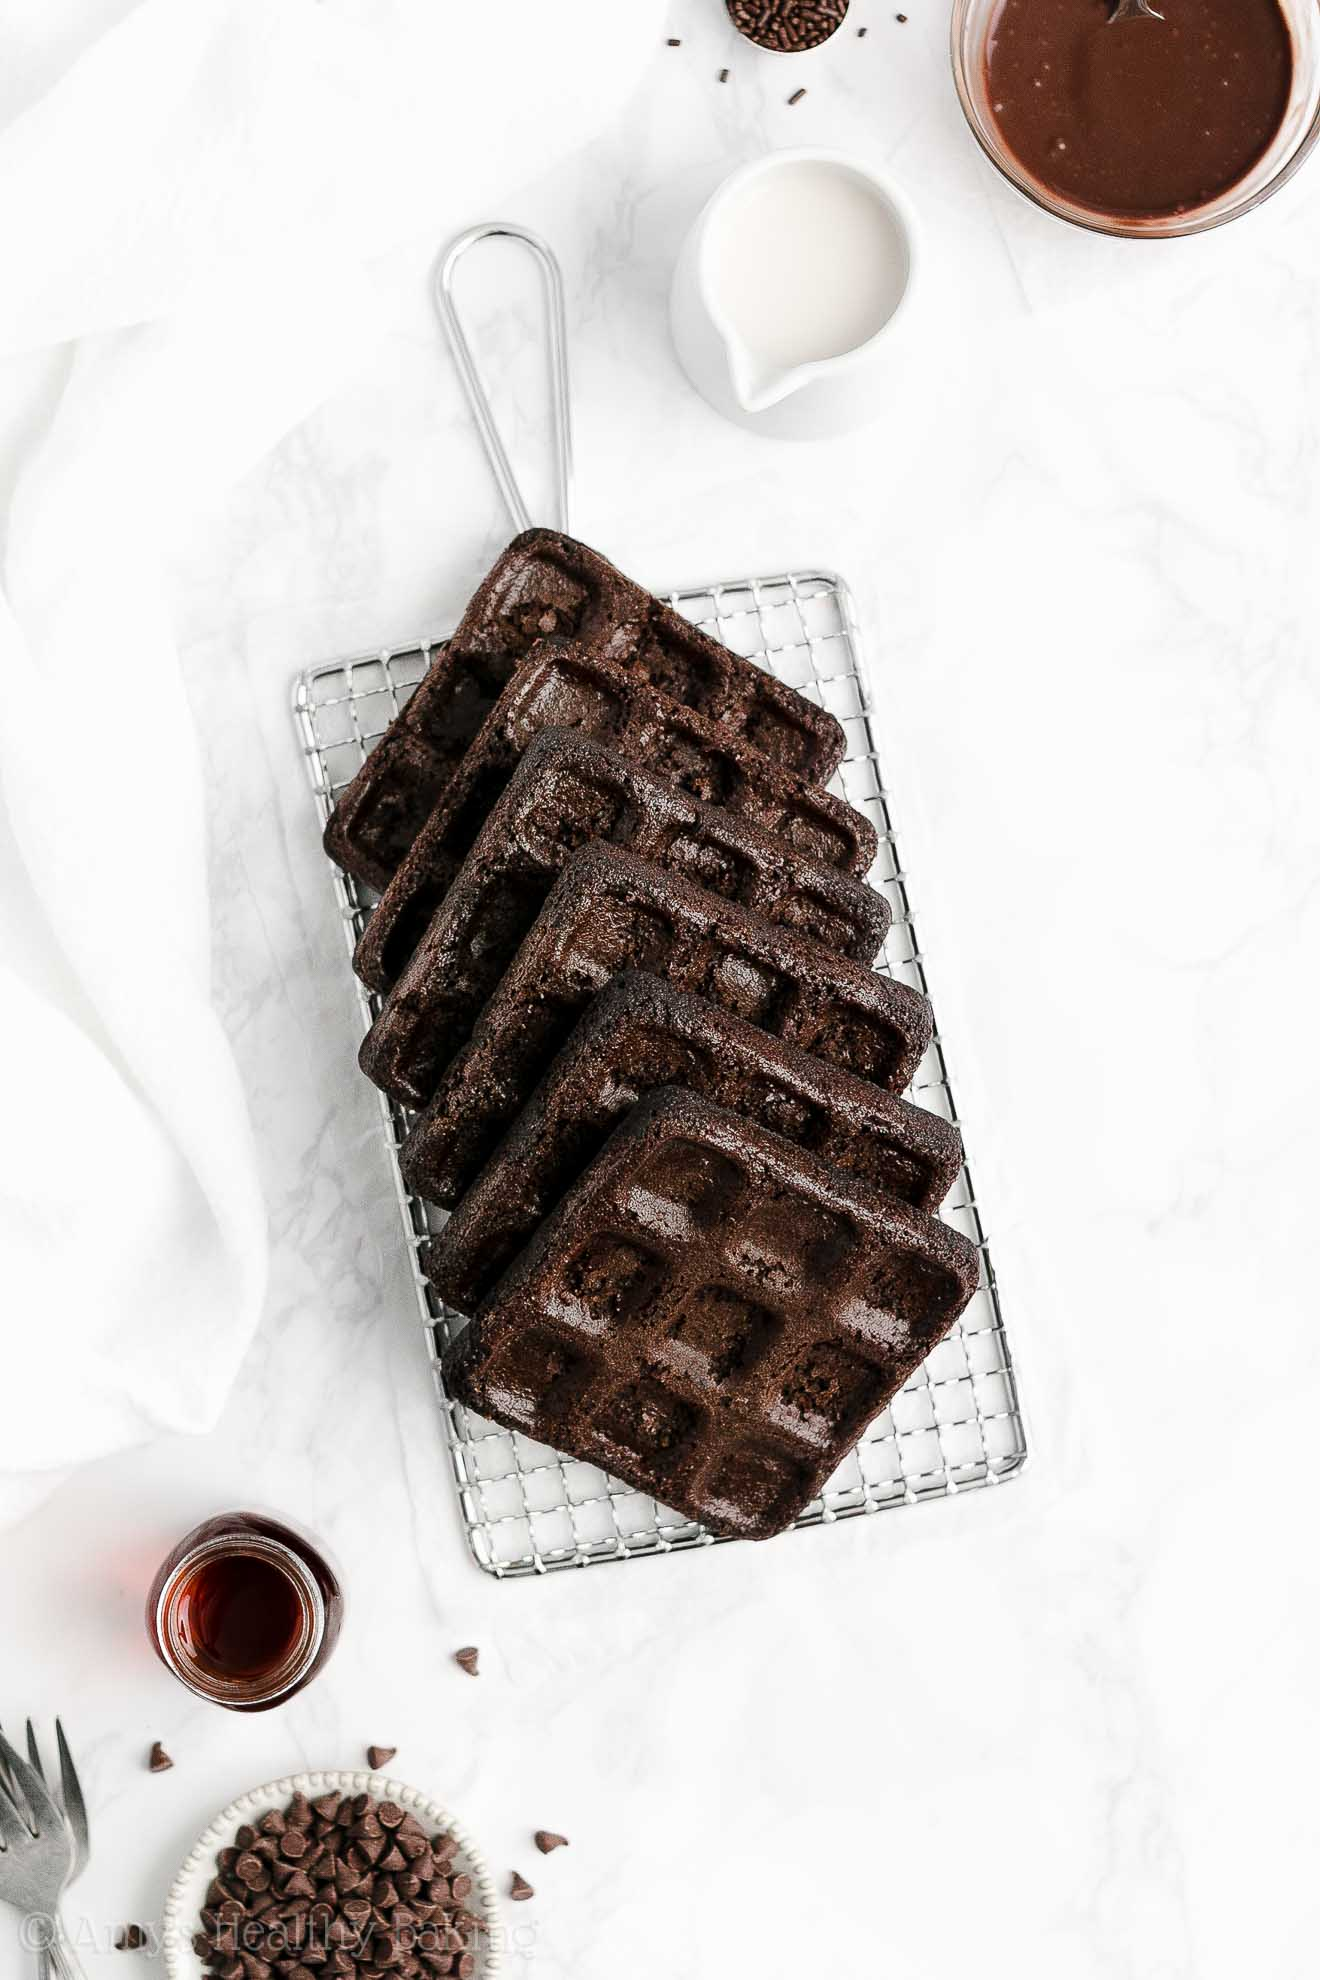 ULTIMATE Healthy Gluten Free Low Fat Low Sugar Fluffy Chocolate Waffles